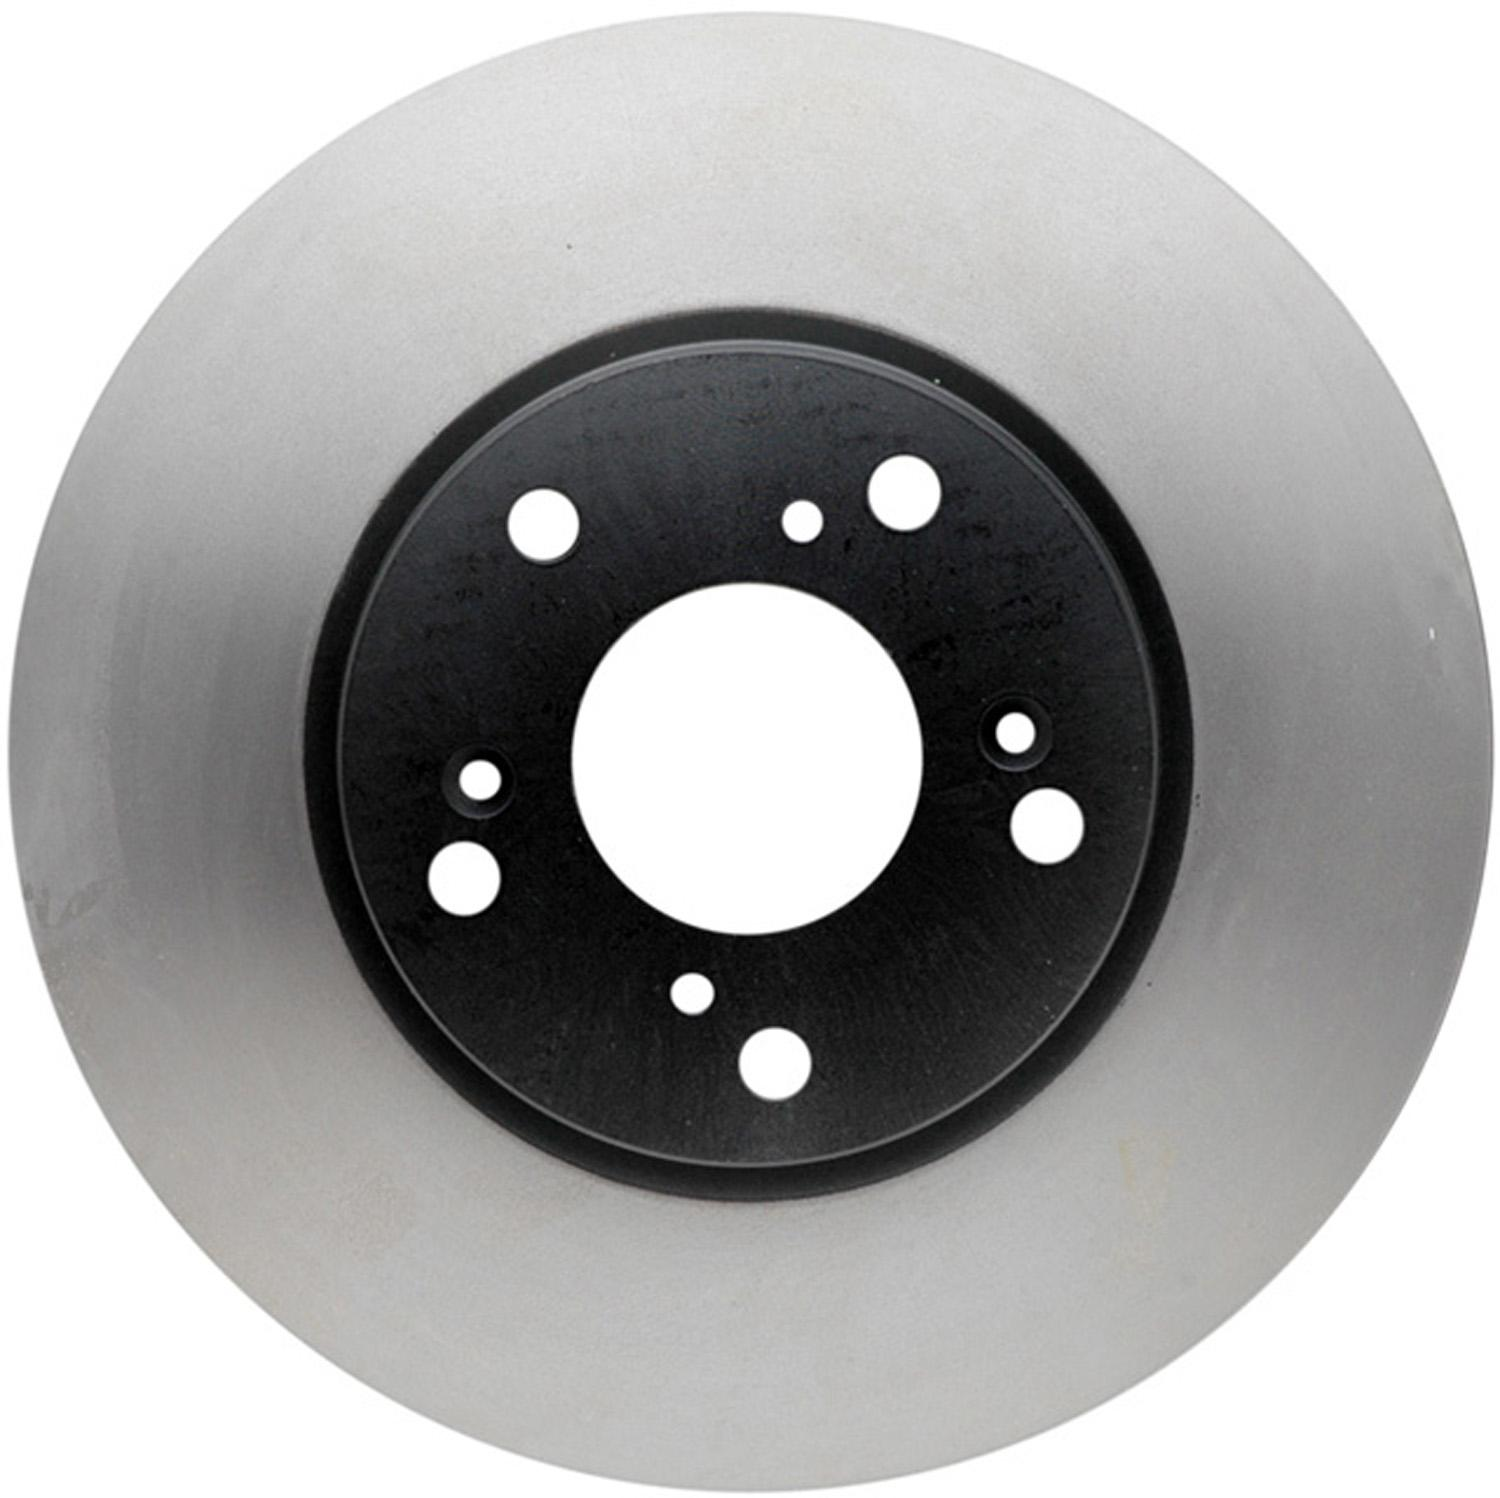 ACDELCO PROFESSIONAL BRAKES - Disc Brake Rotor (Front) - ADU 18A912